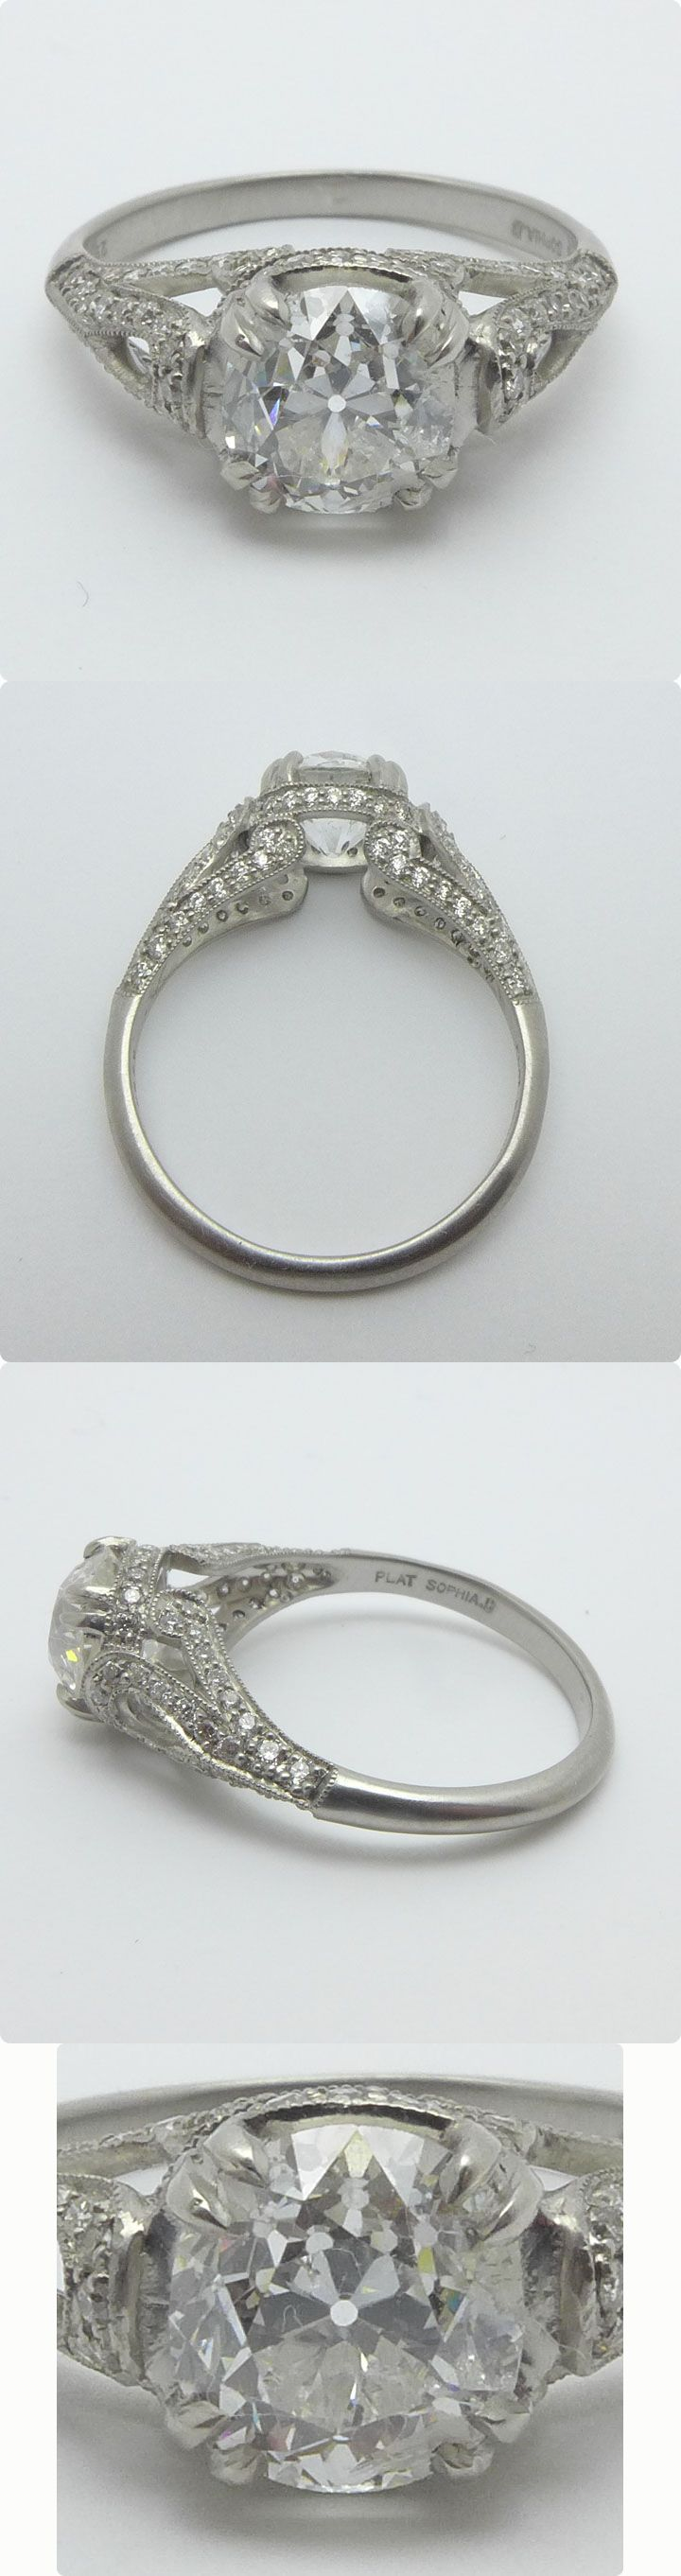 Old european cut elegant diamond solitaire ring in platinum and 18k - You Just Don T See Engagement Rings This Gorgeous Anymore Platinum Old European Cut Diamond Engagement Ring With Elegant Filigree Details In An Art Deco